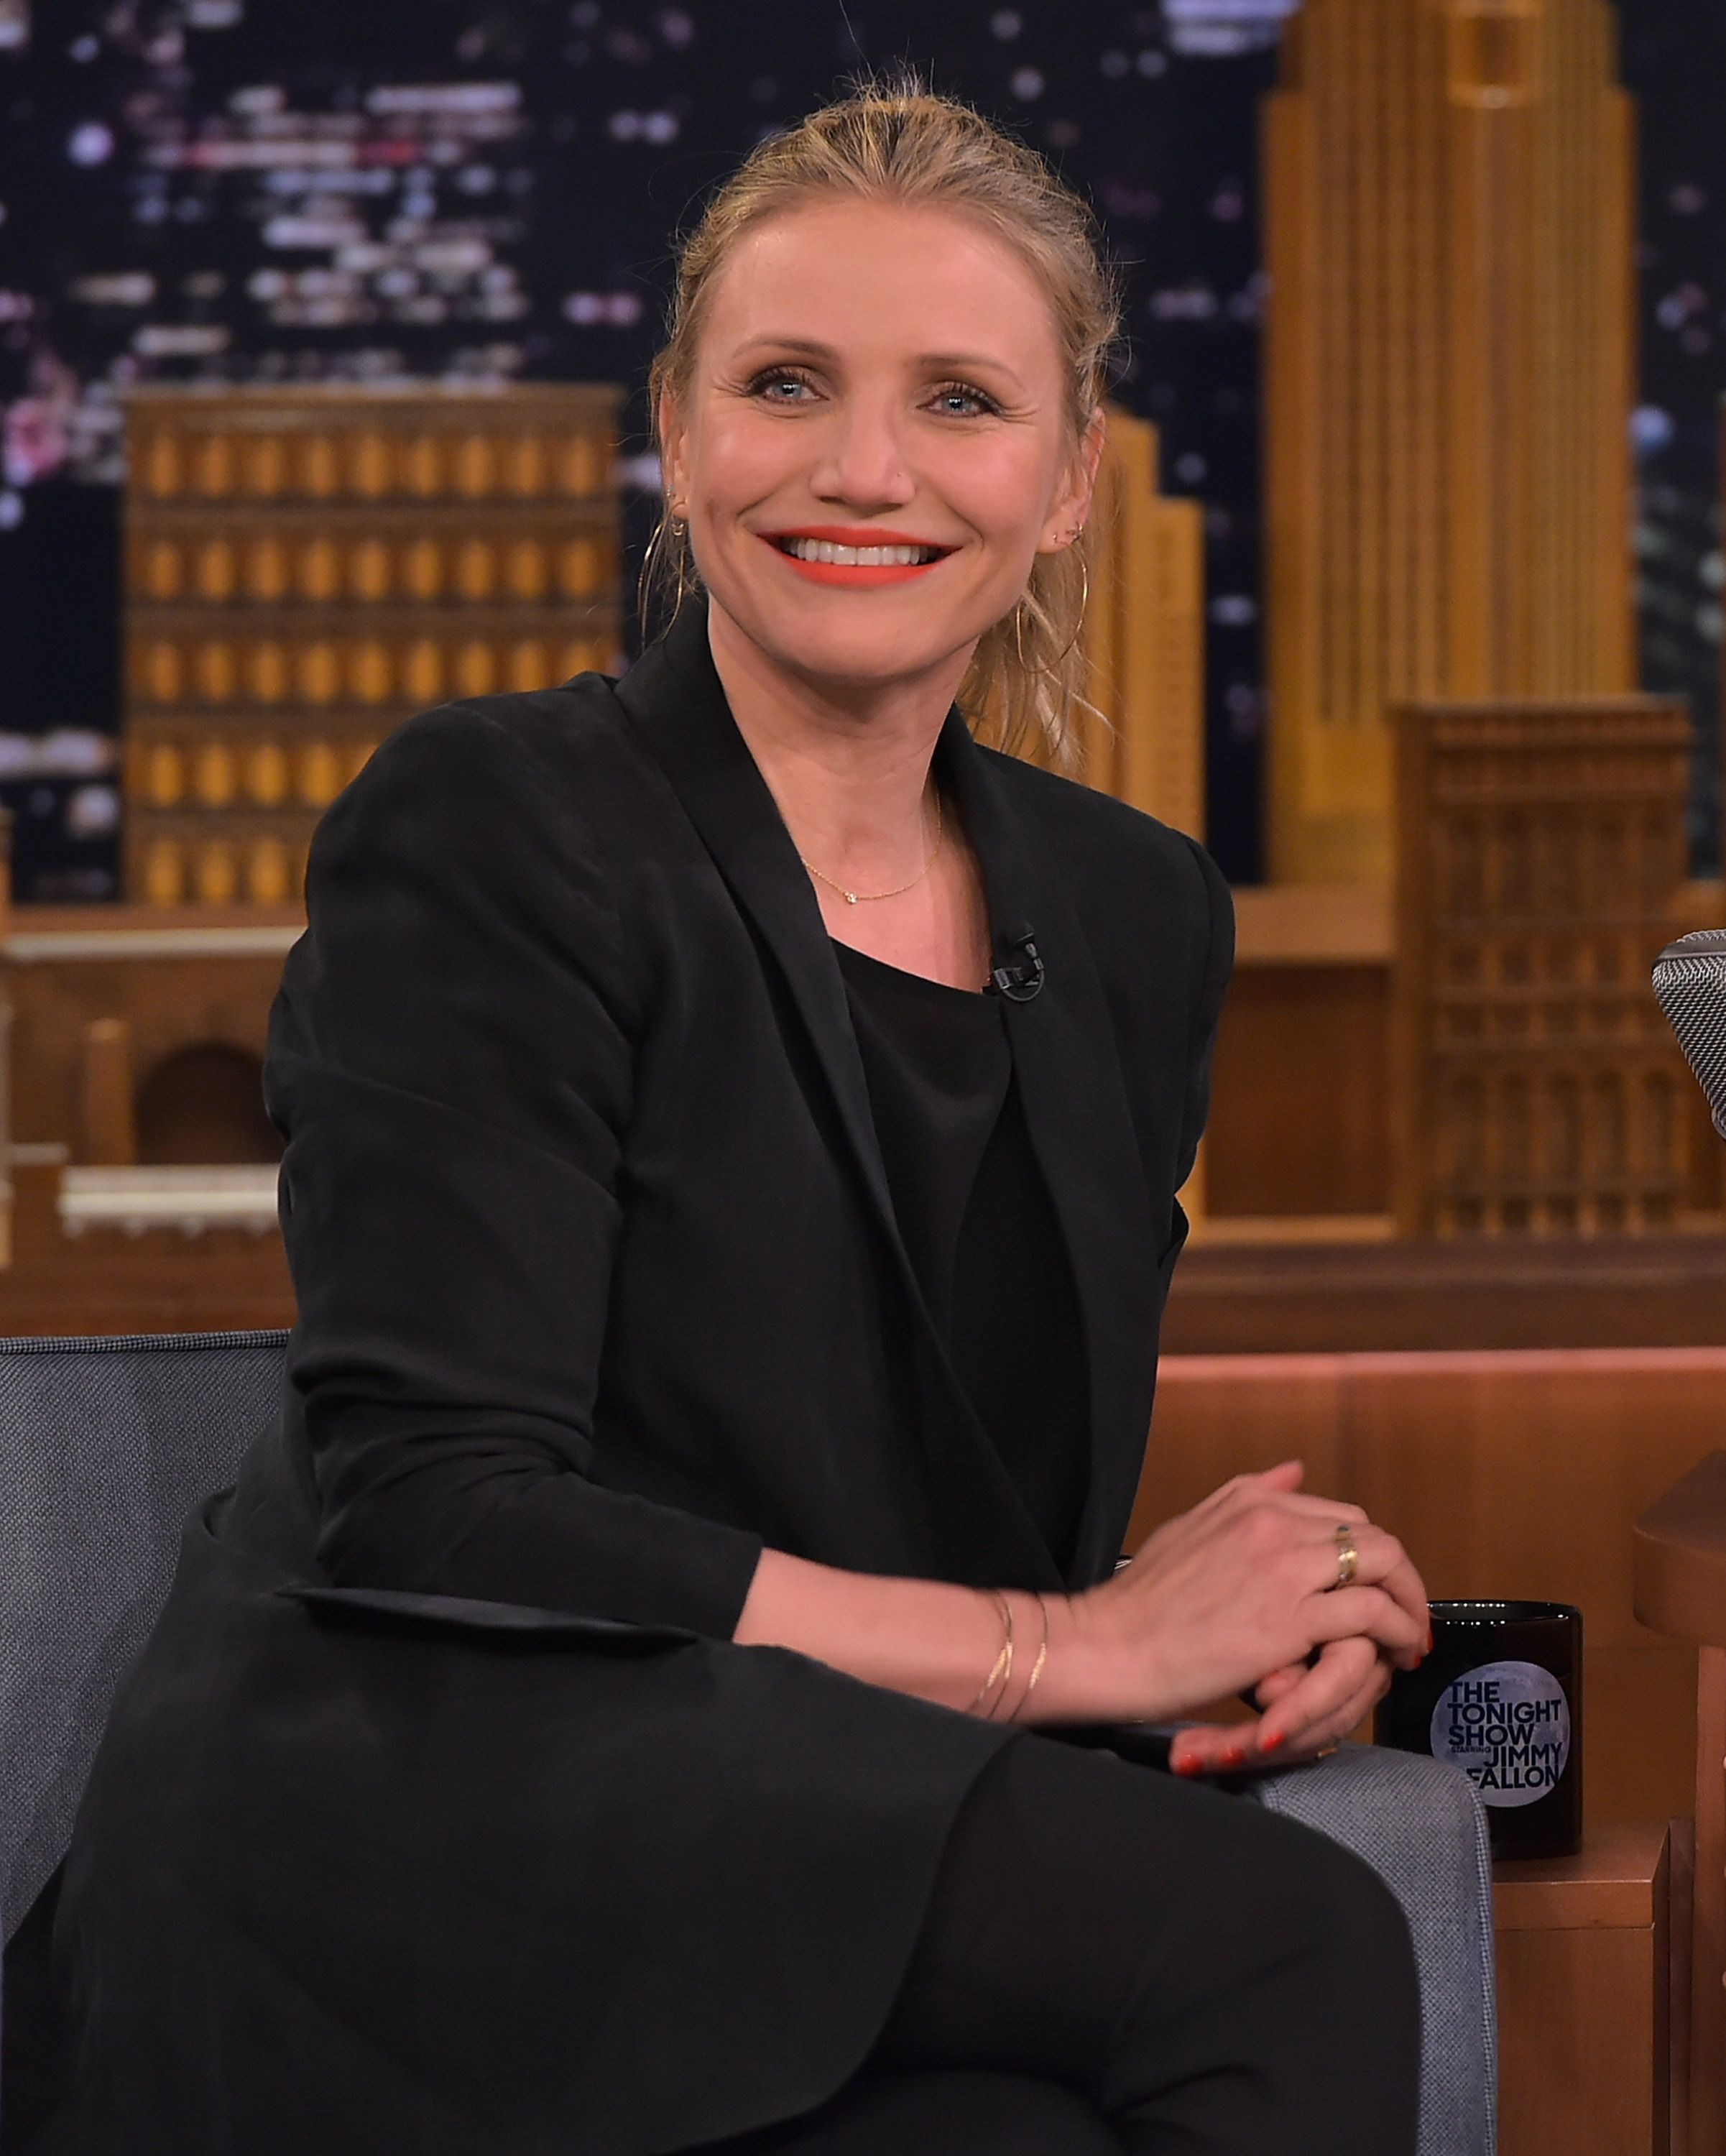 Cameron Diaz on The Tonight Show with Jimmy Fallon/Photo:Getty Images